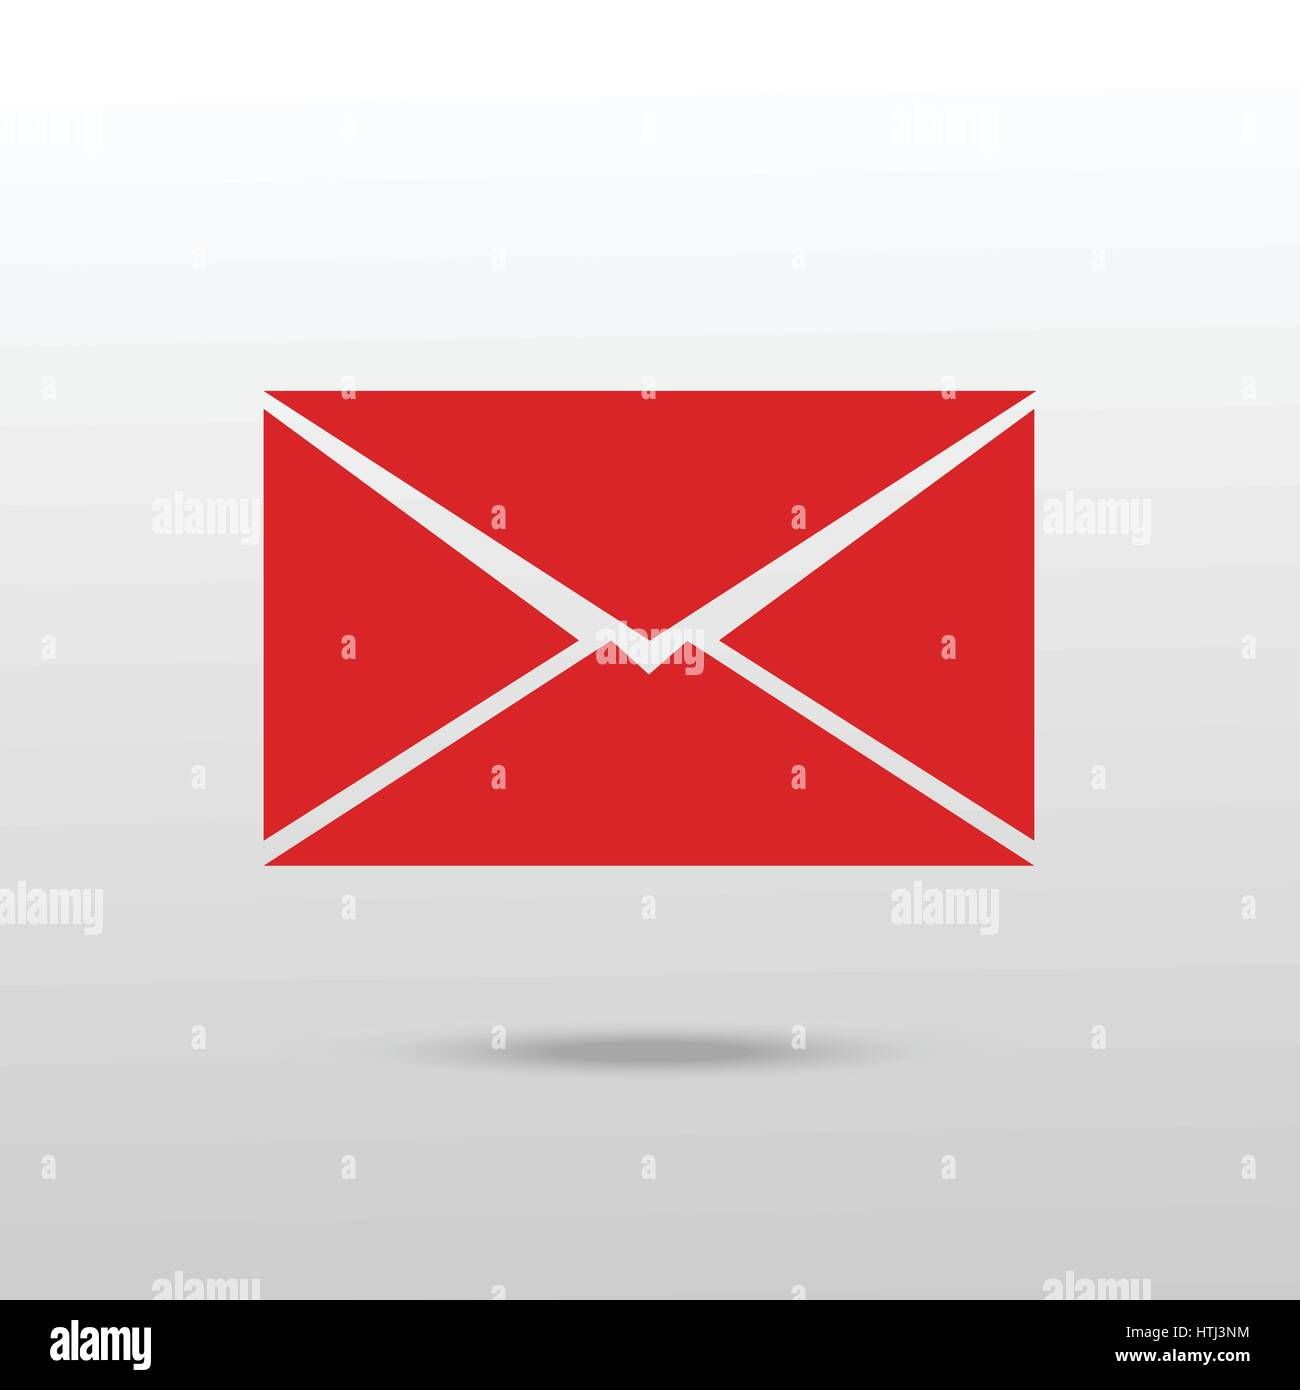 Mail icon. Envelope icon vector. - Stock Image